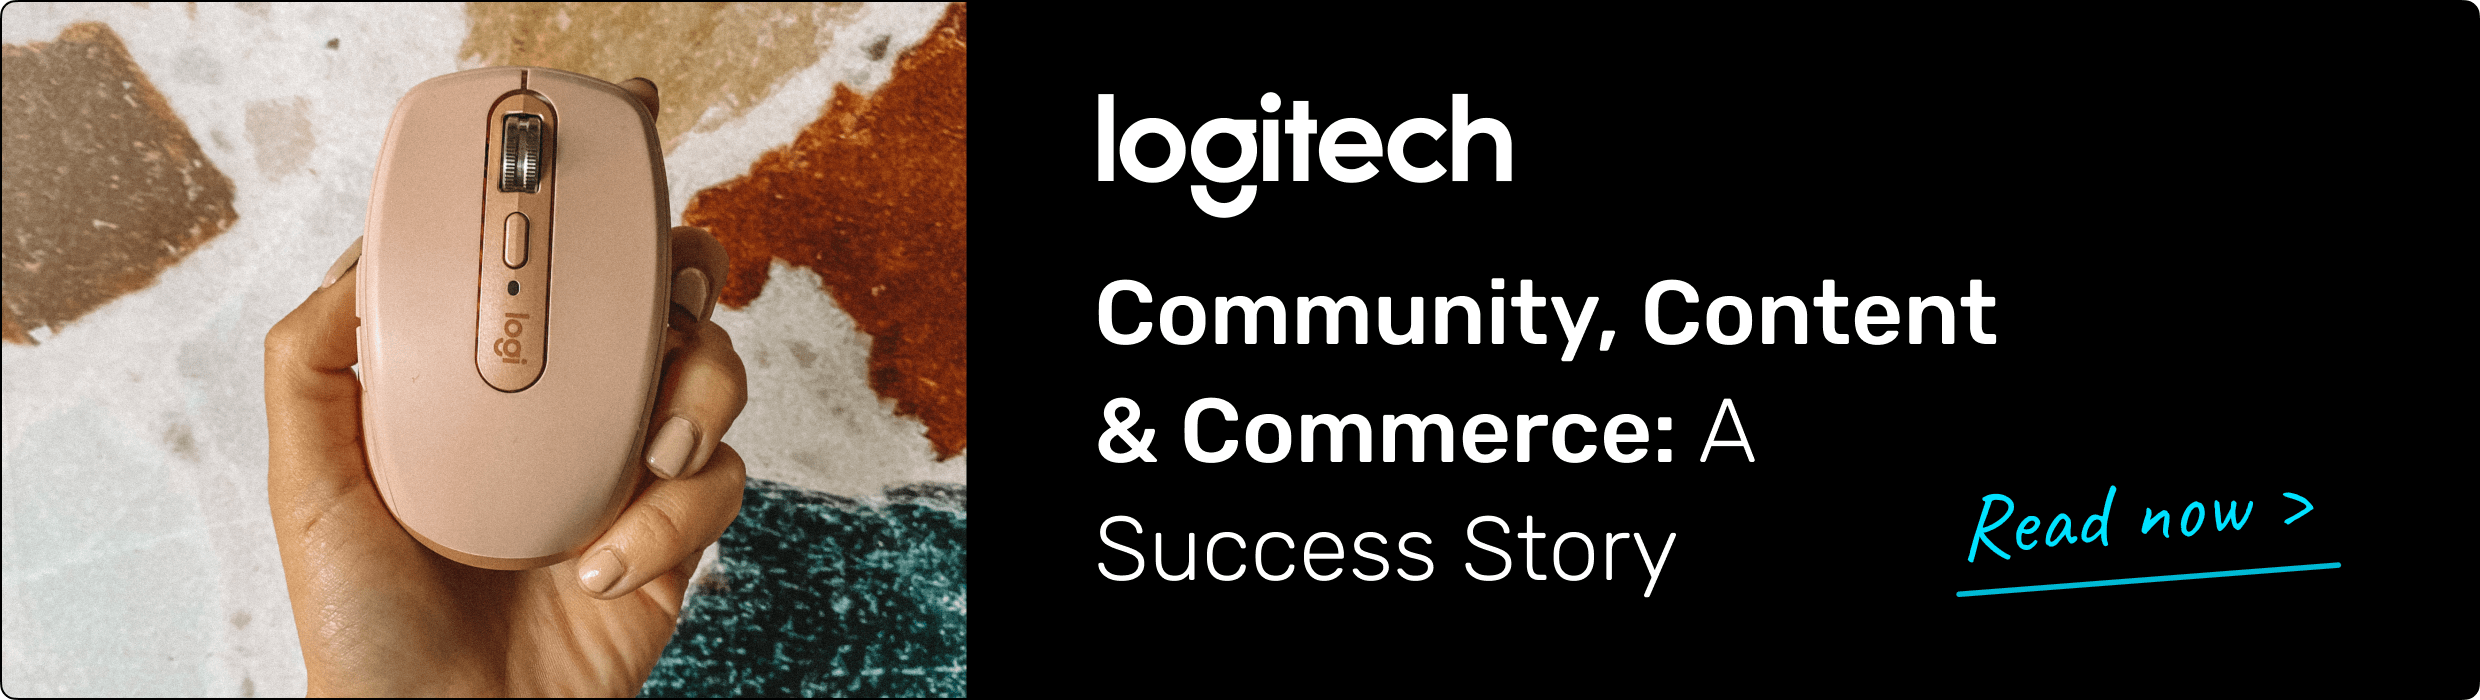 Community, content and commerce